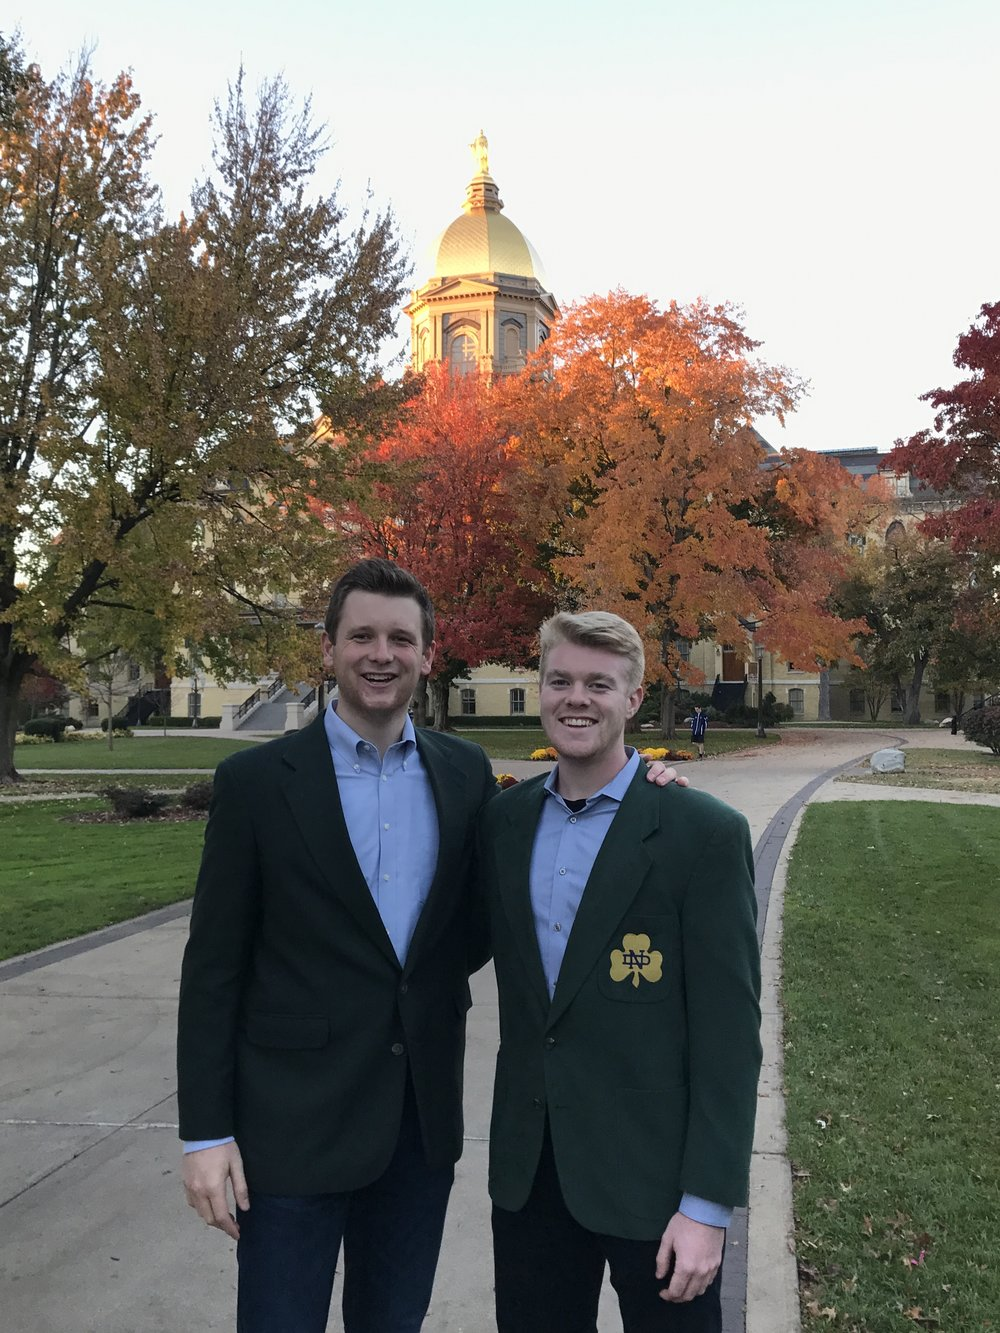 Chandler Crane with his roommate, Will Cunningham